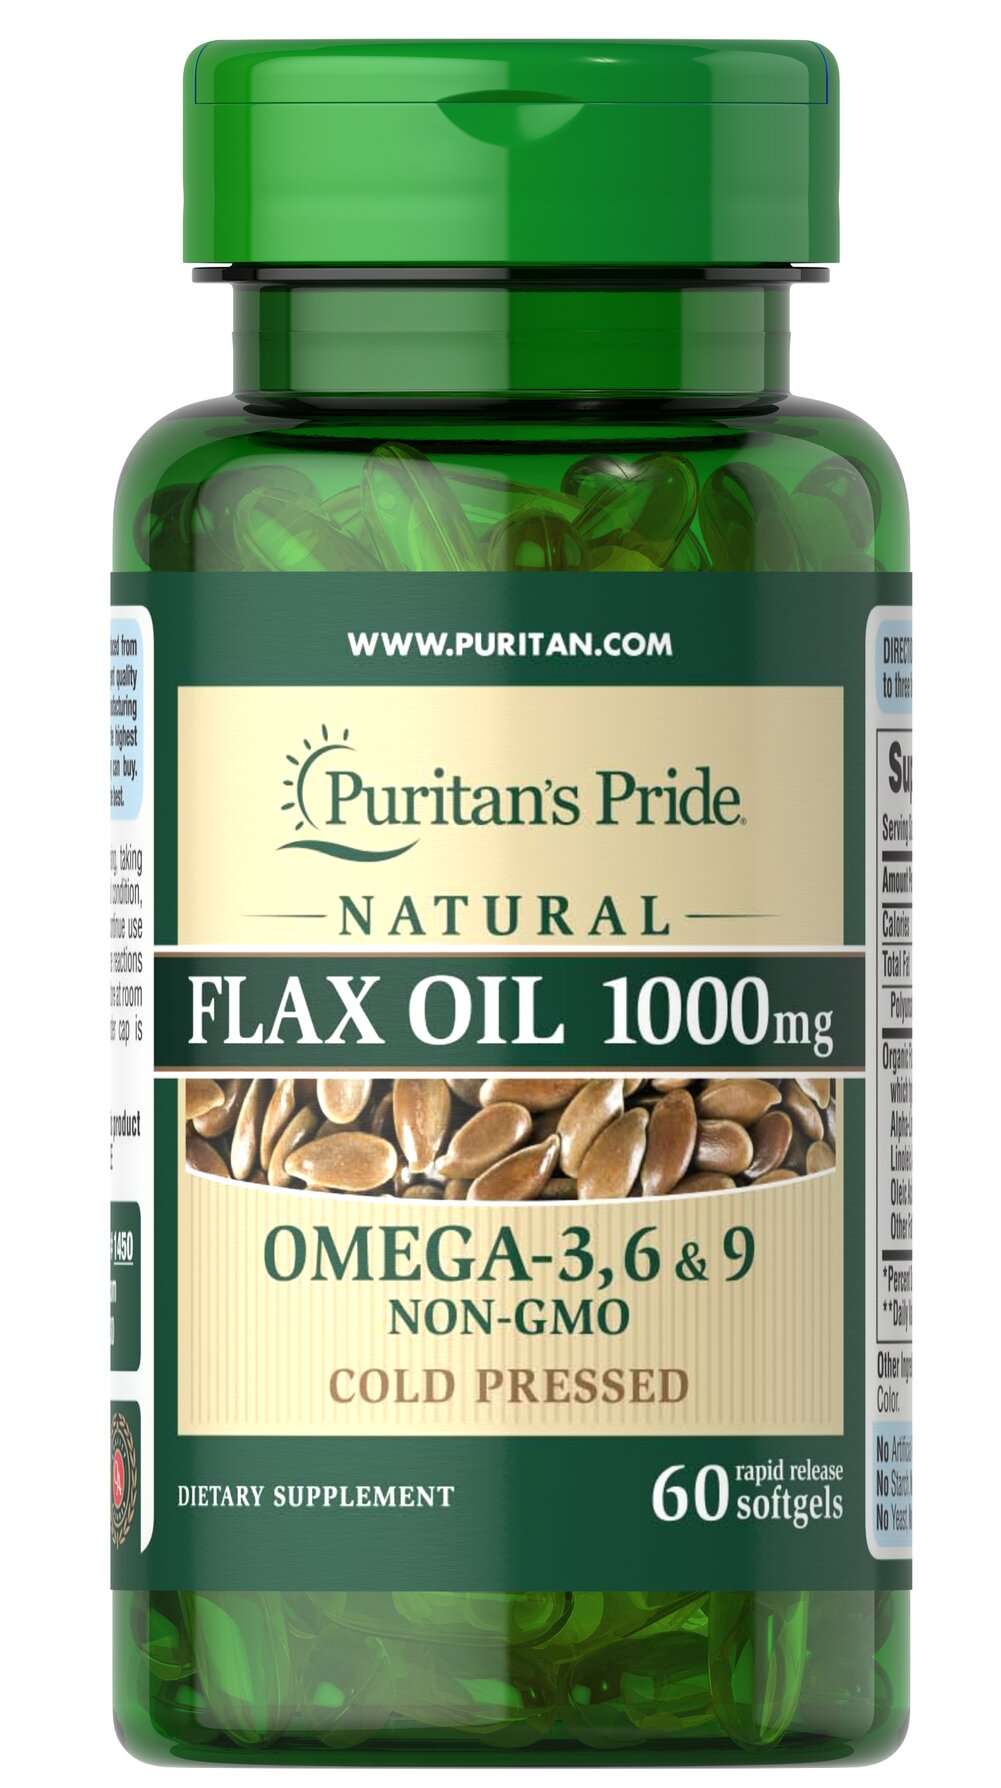 Natural Flax Oil 1000 mg  60 Softgels 1000 mg $5.99